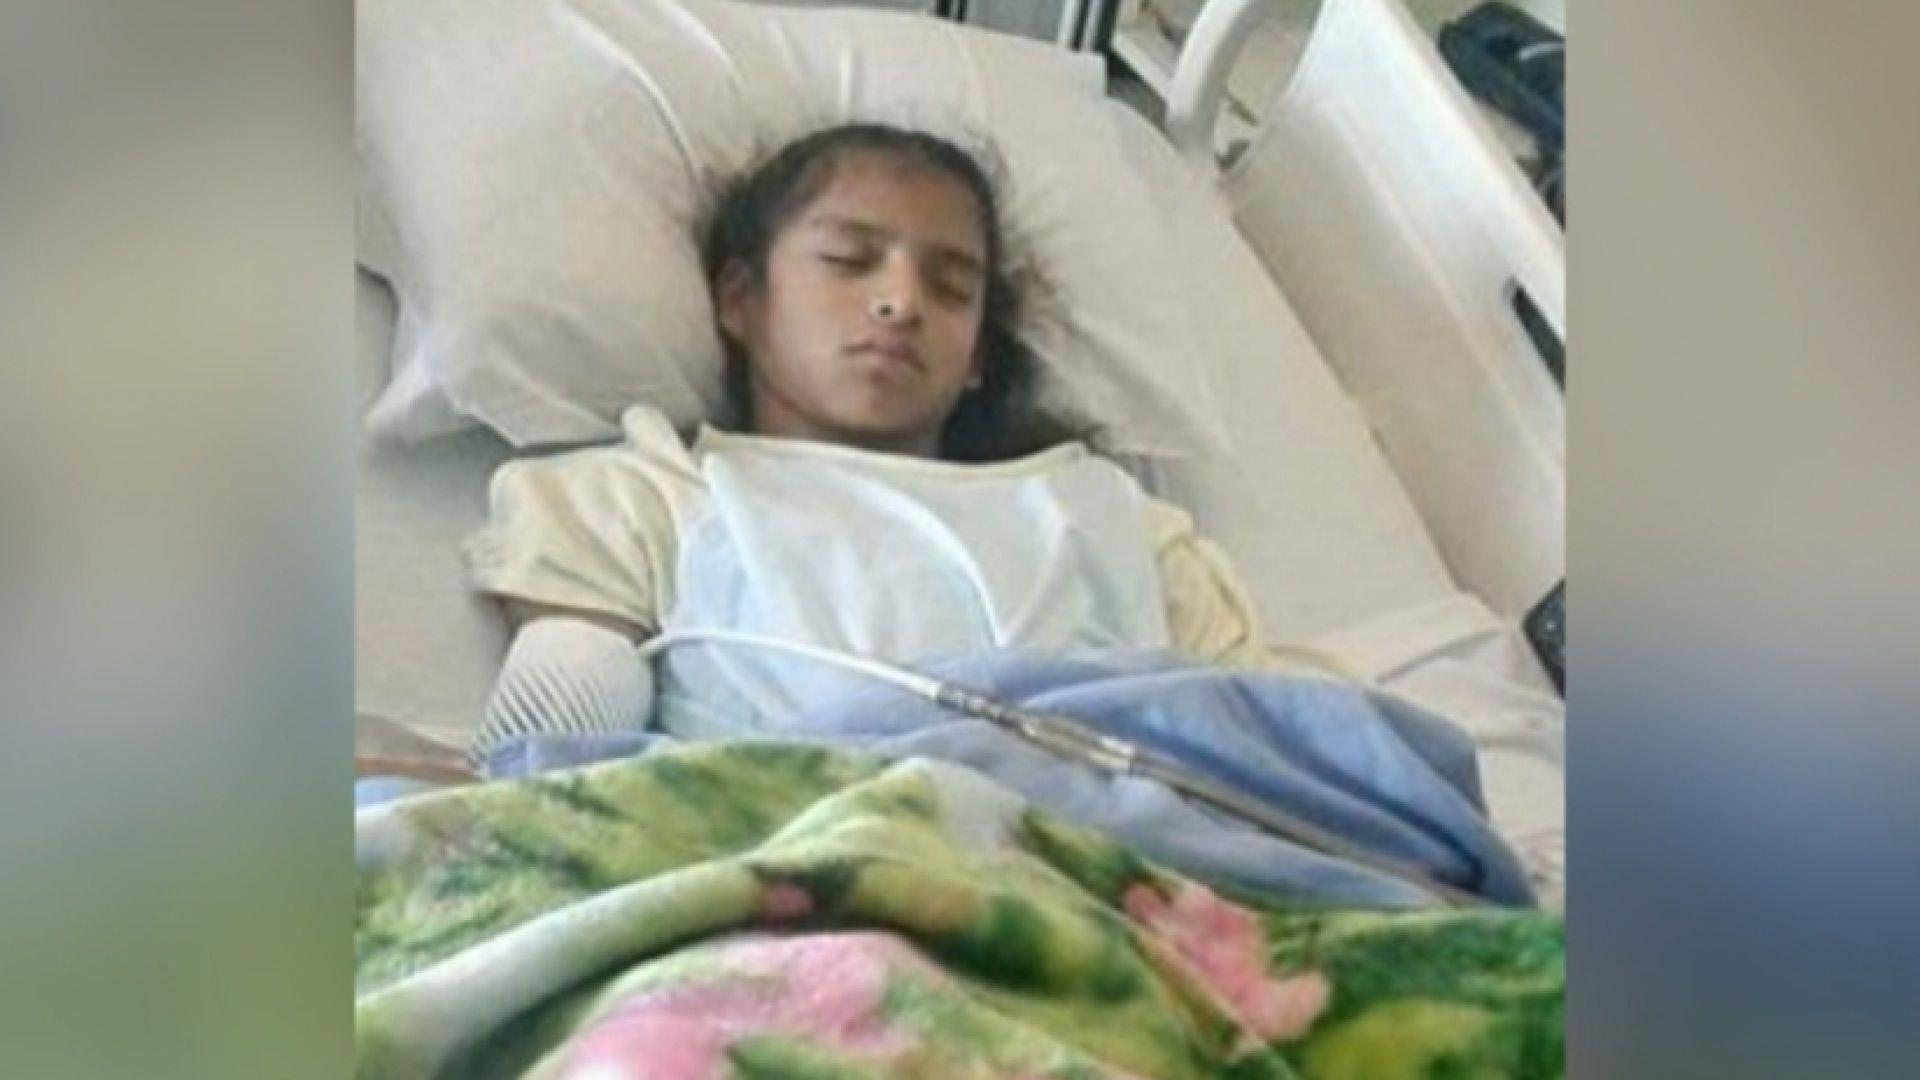 YearOld Mexican Girl With Cerebral Palsy Detained By Border - 1 in 10 babies cp map of us